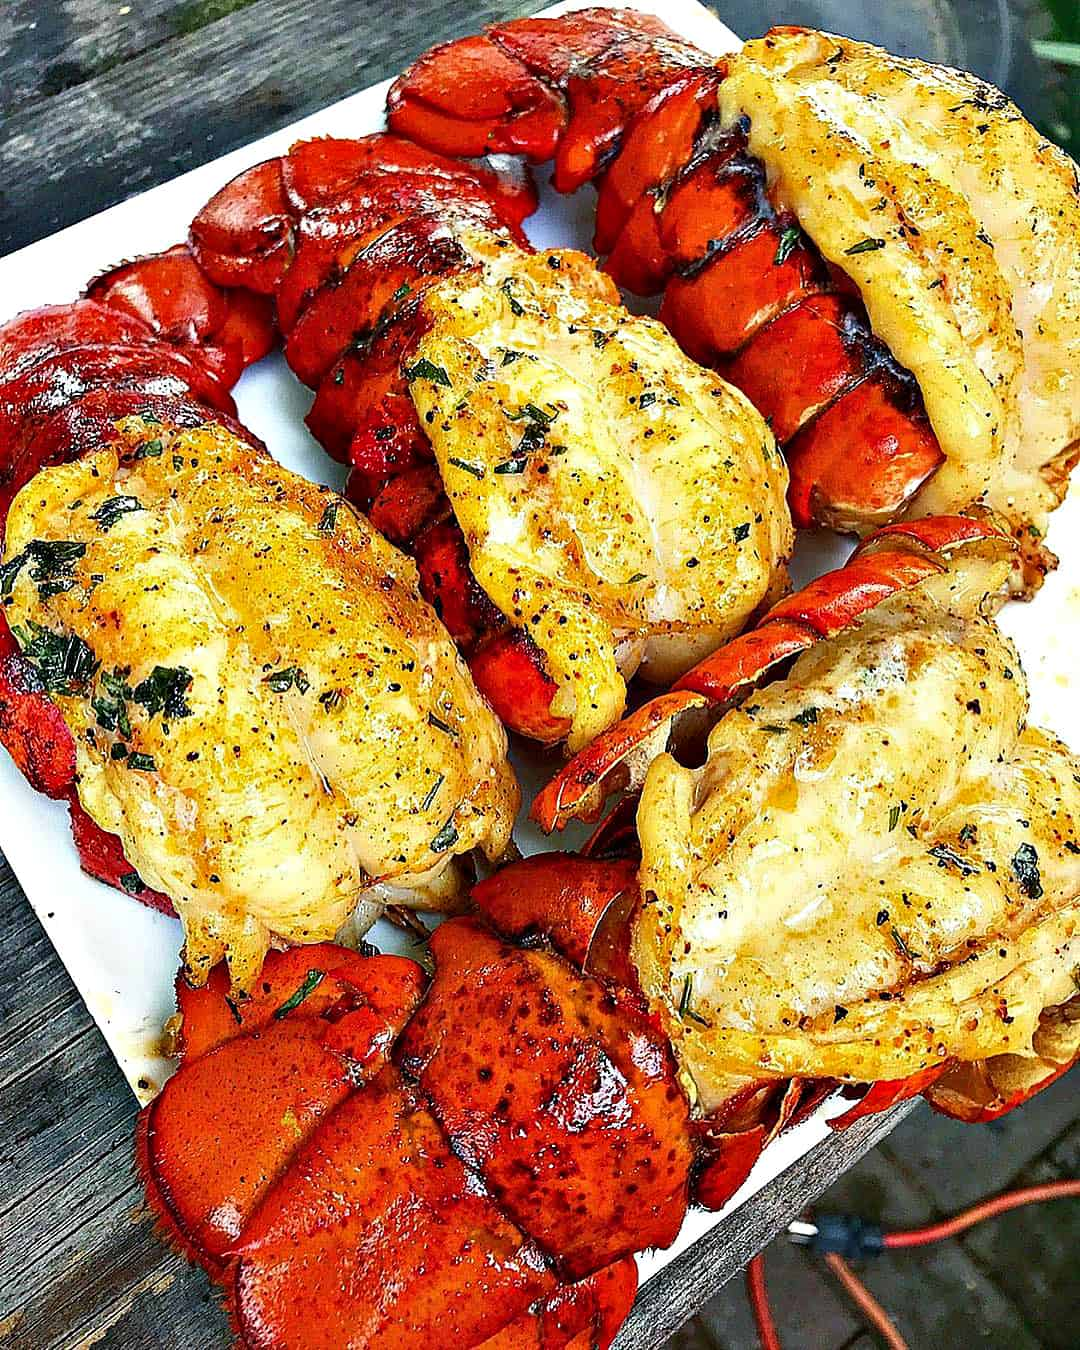 Grilled Lobster Tail for Father's Day